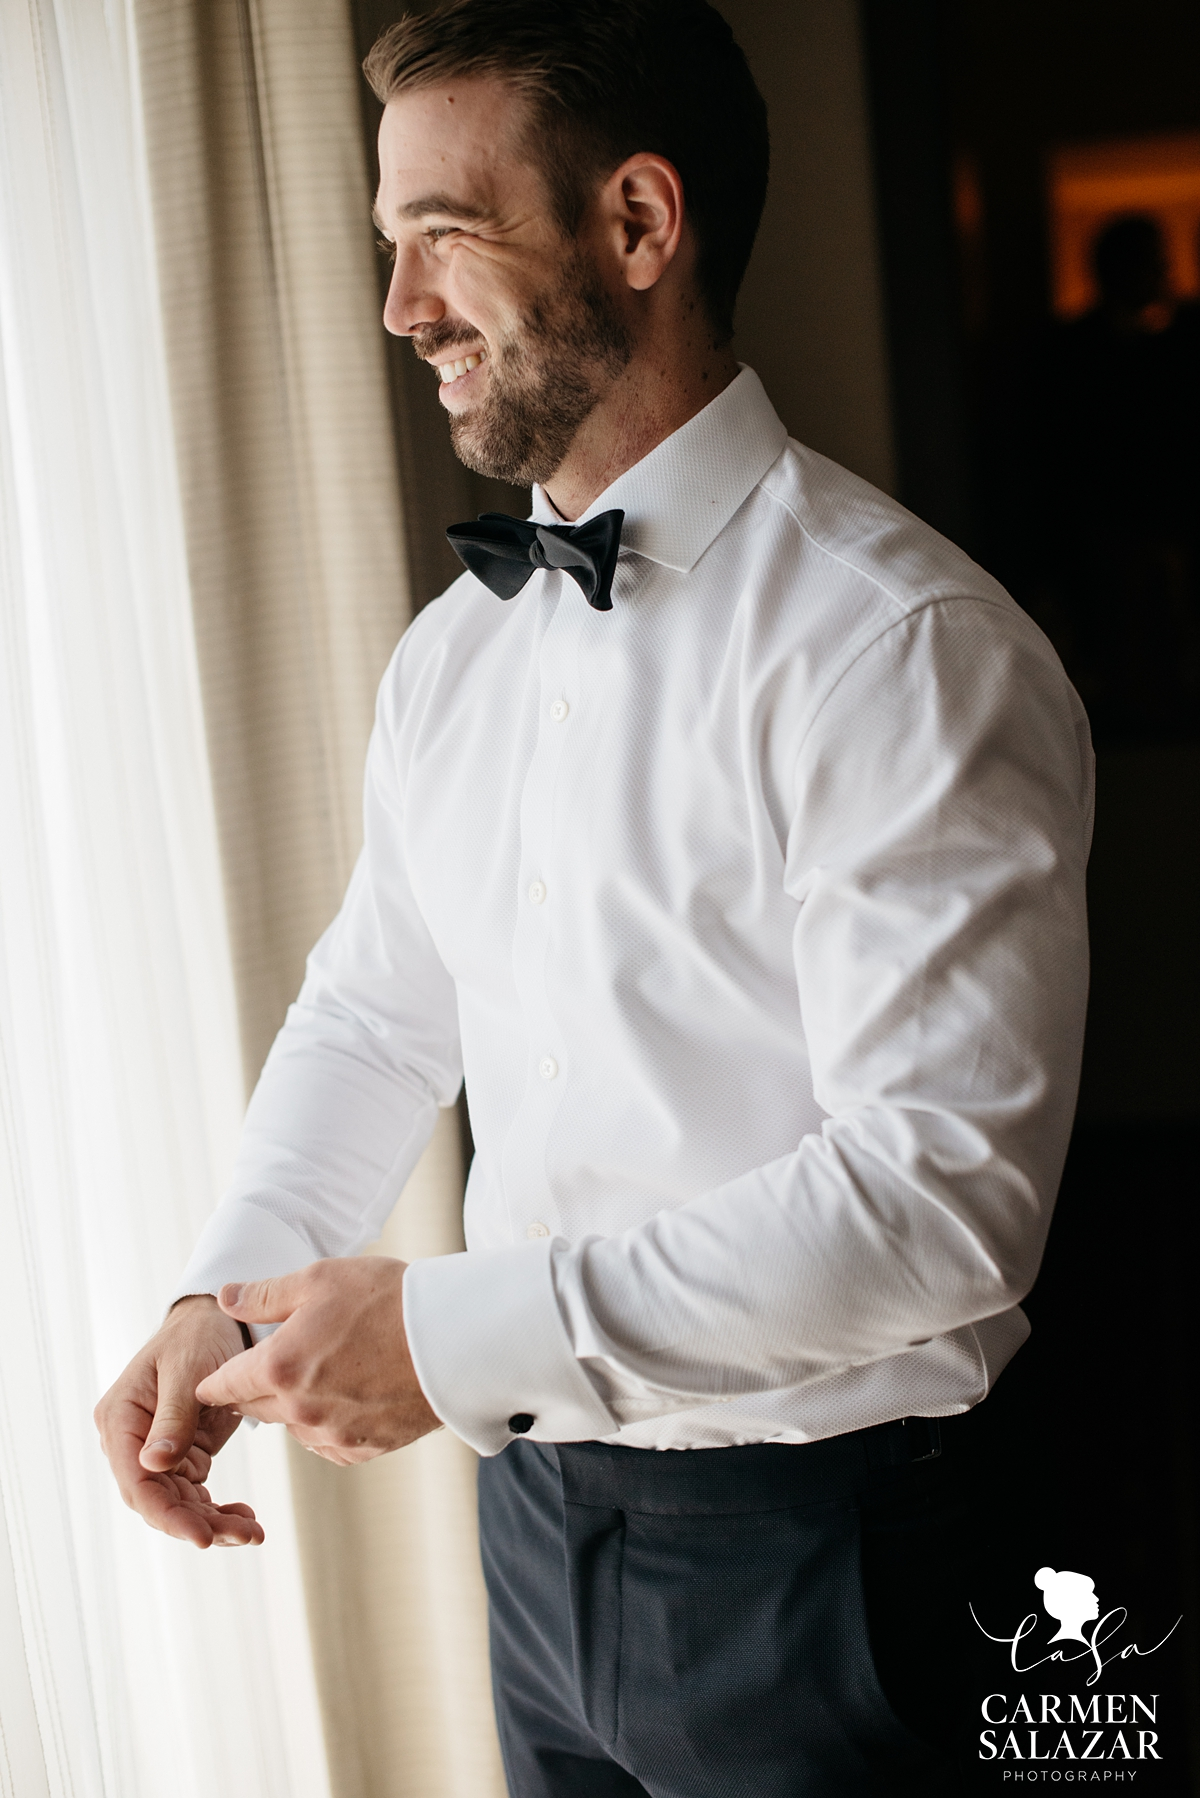 smiling groom in wedding suit fixing cufflinks and smiling by Sacramento wedding photographer Carmen Salazar